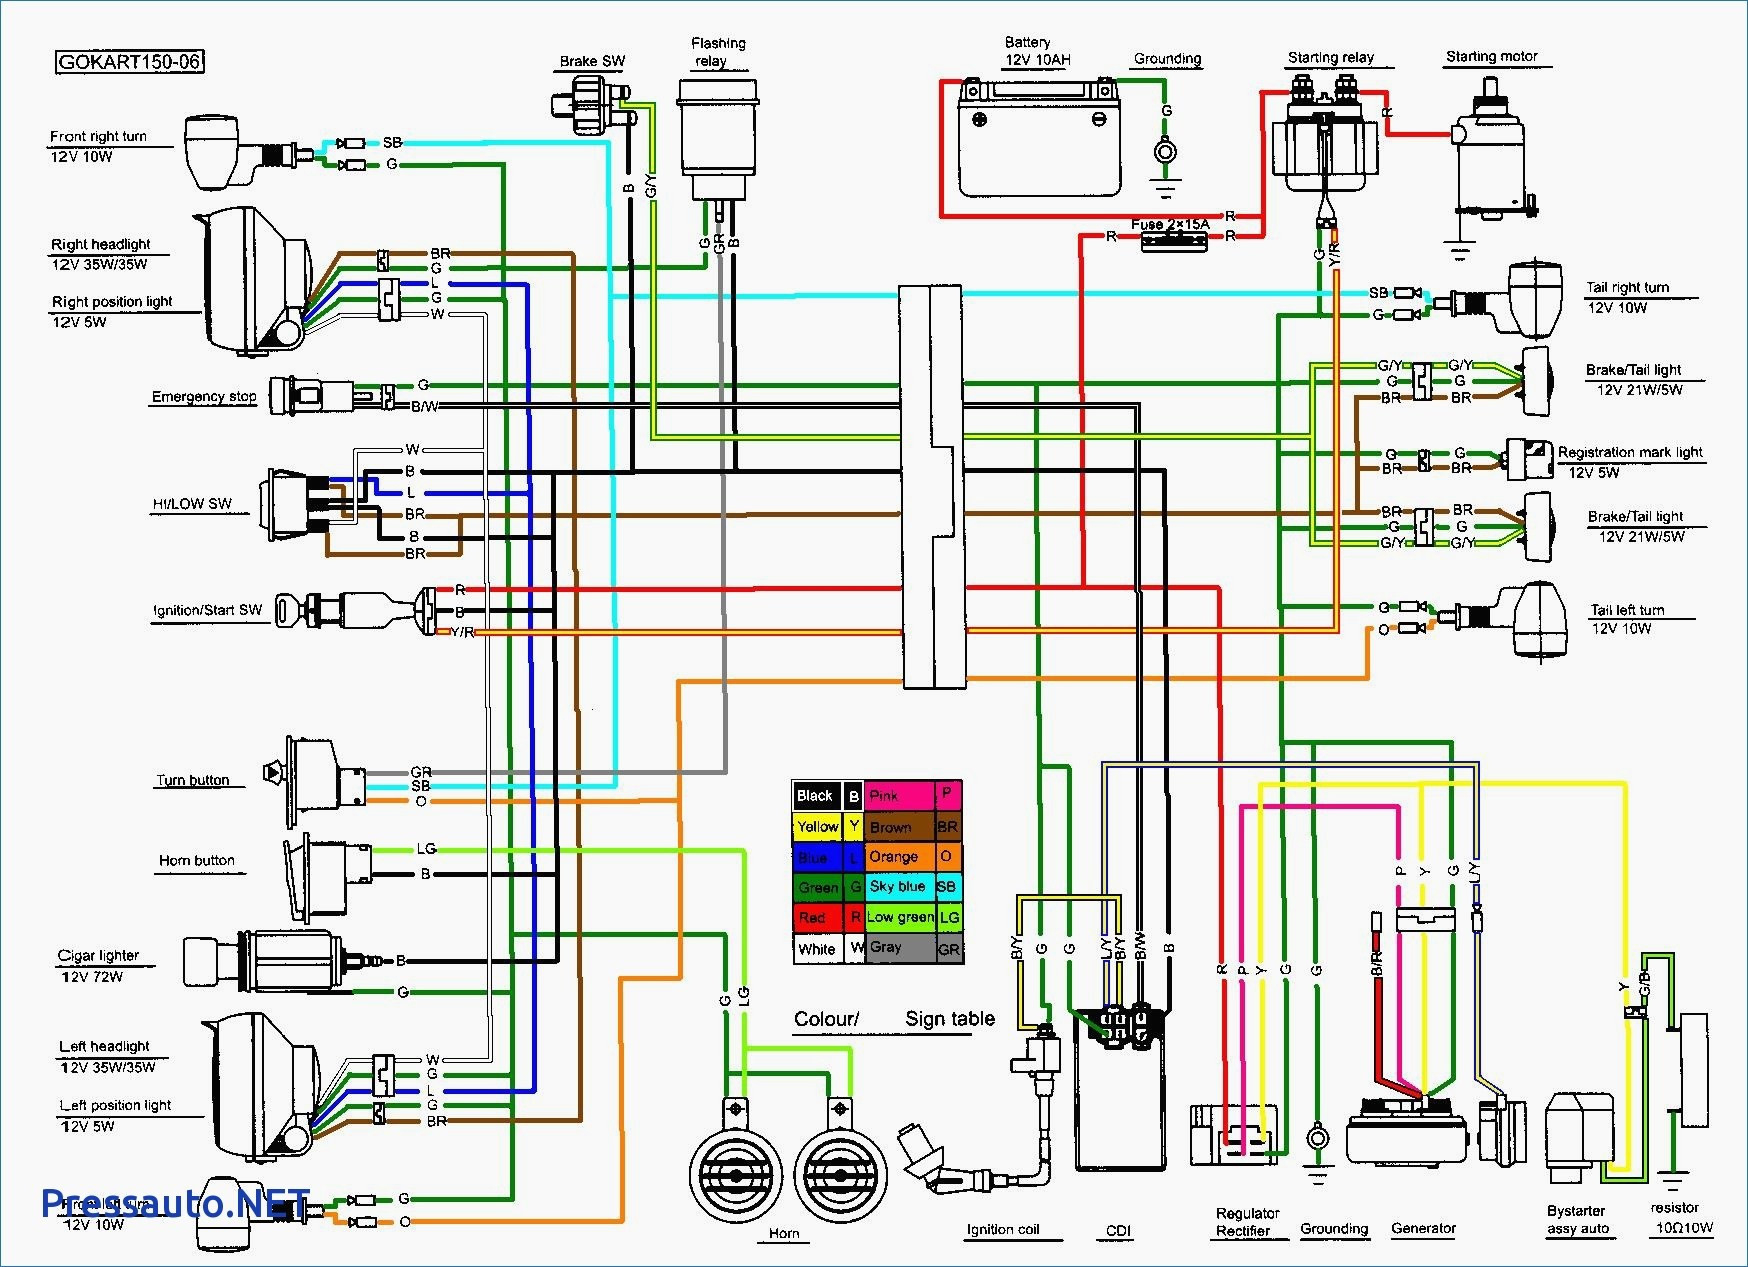 Diagram Z Star Atv Wiring Diagram Full Version Hd Quality Wiring Diagram Swapwiringx18 Locandadossello It